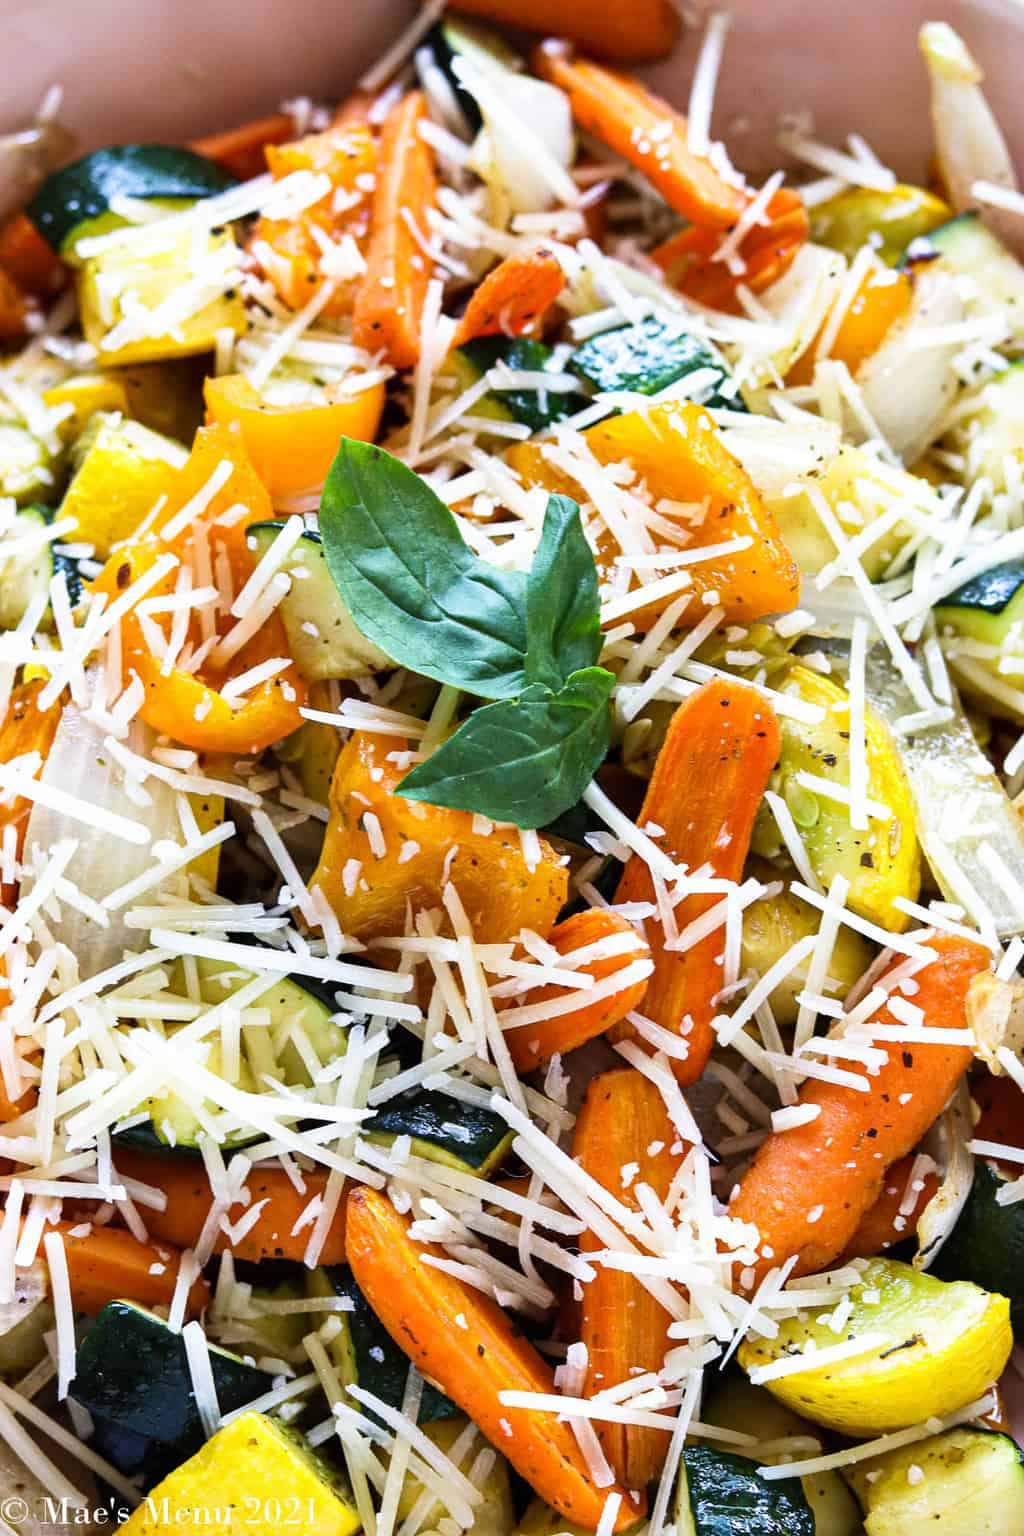 An up-close shot of a bowl of air fryer veggies covered with parmesan cheese